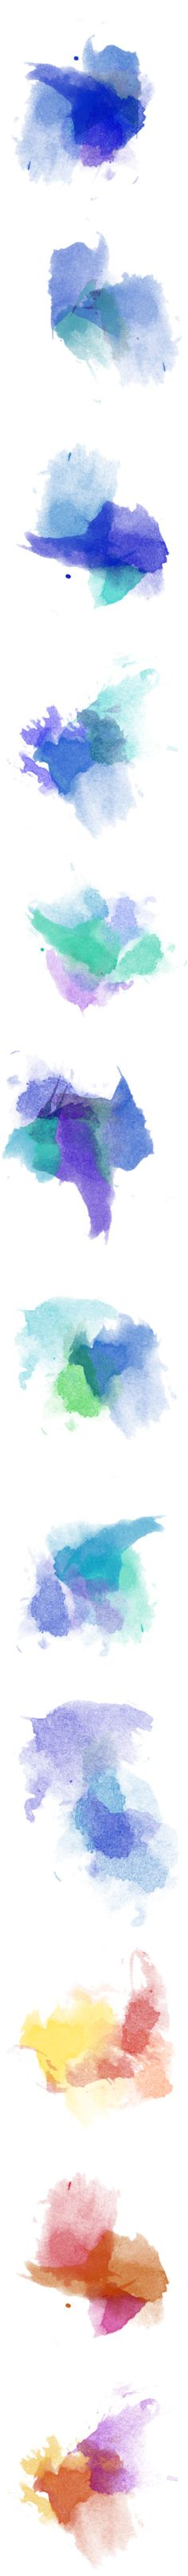 Watercolor Splashes -- Happy New Year by jilbert on Polyvore featuring splashes, paint, watercolor, art, backgrounds, effects, layers, blue, effect and fillers